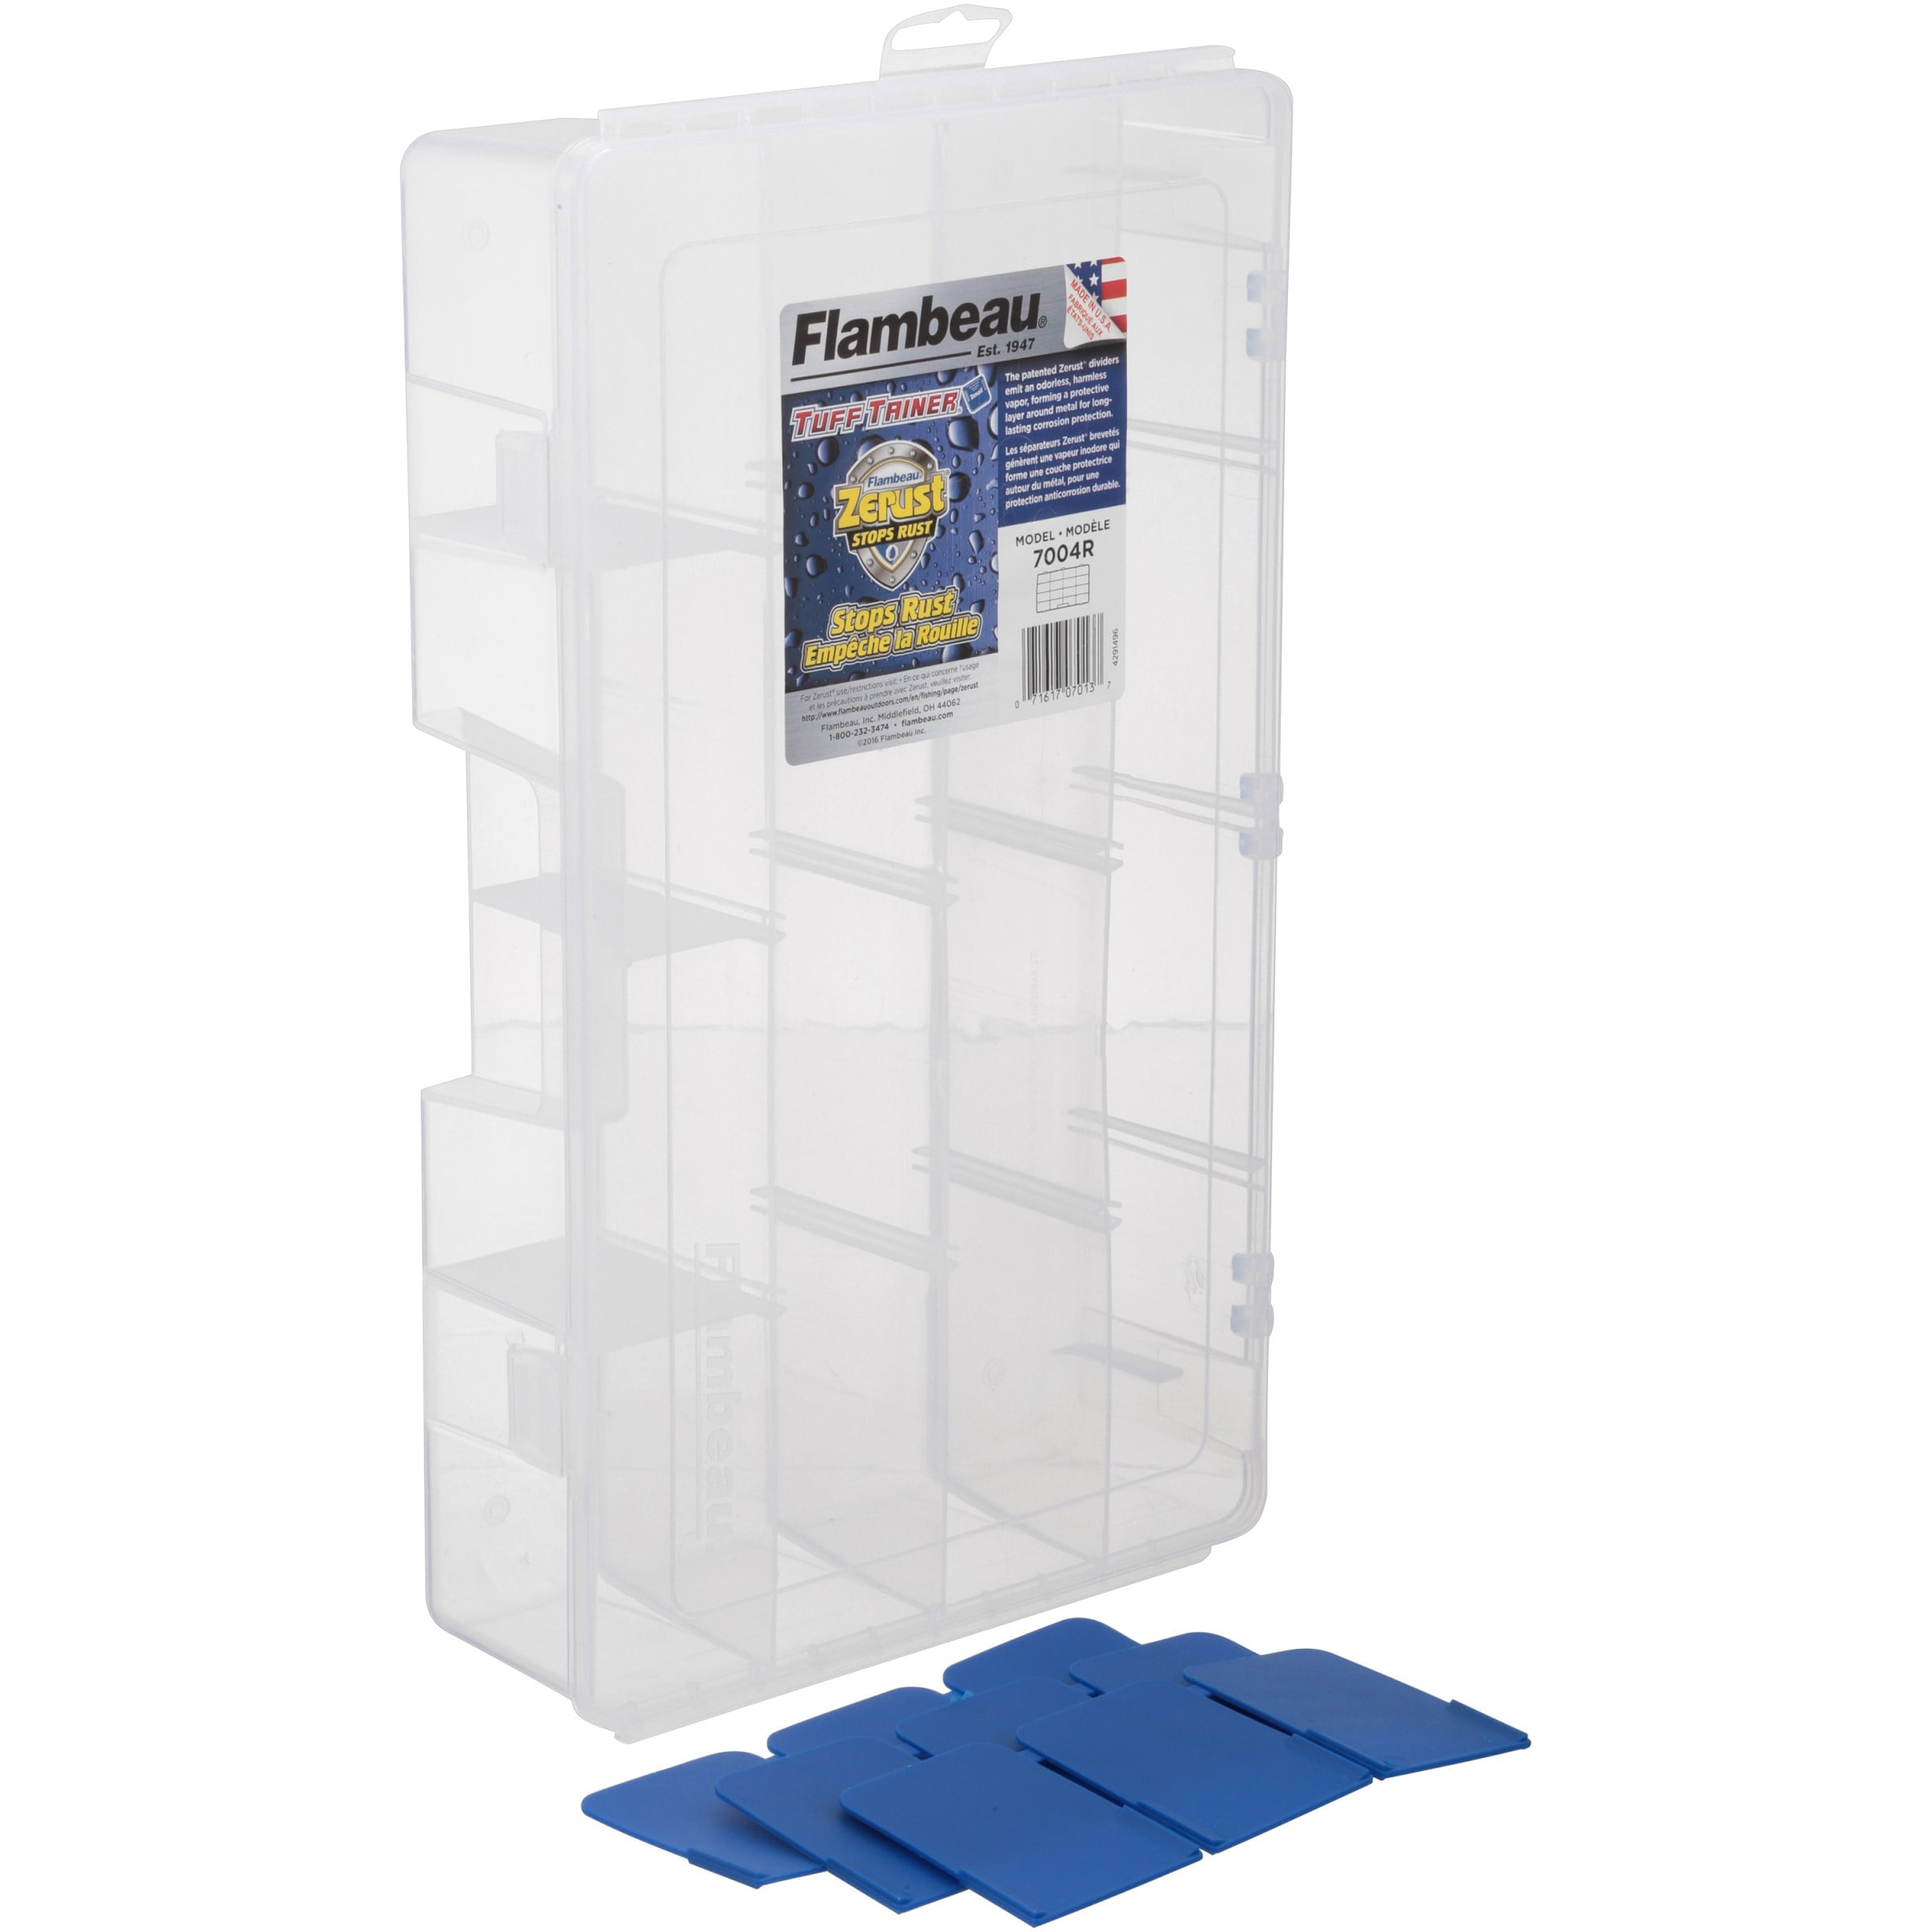 Flambeau Tuff Tainer Utility Box by Flambeau, Inc.